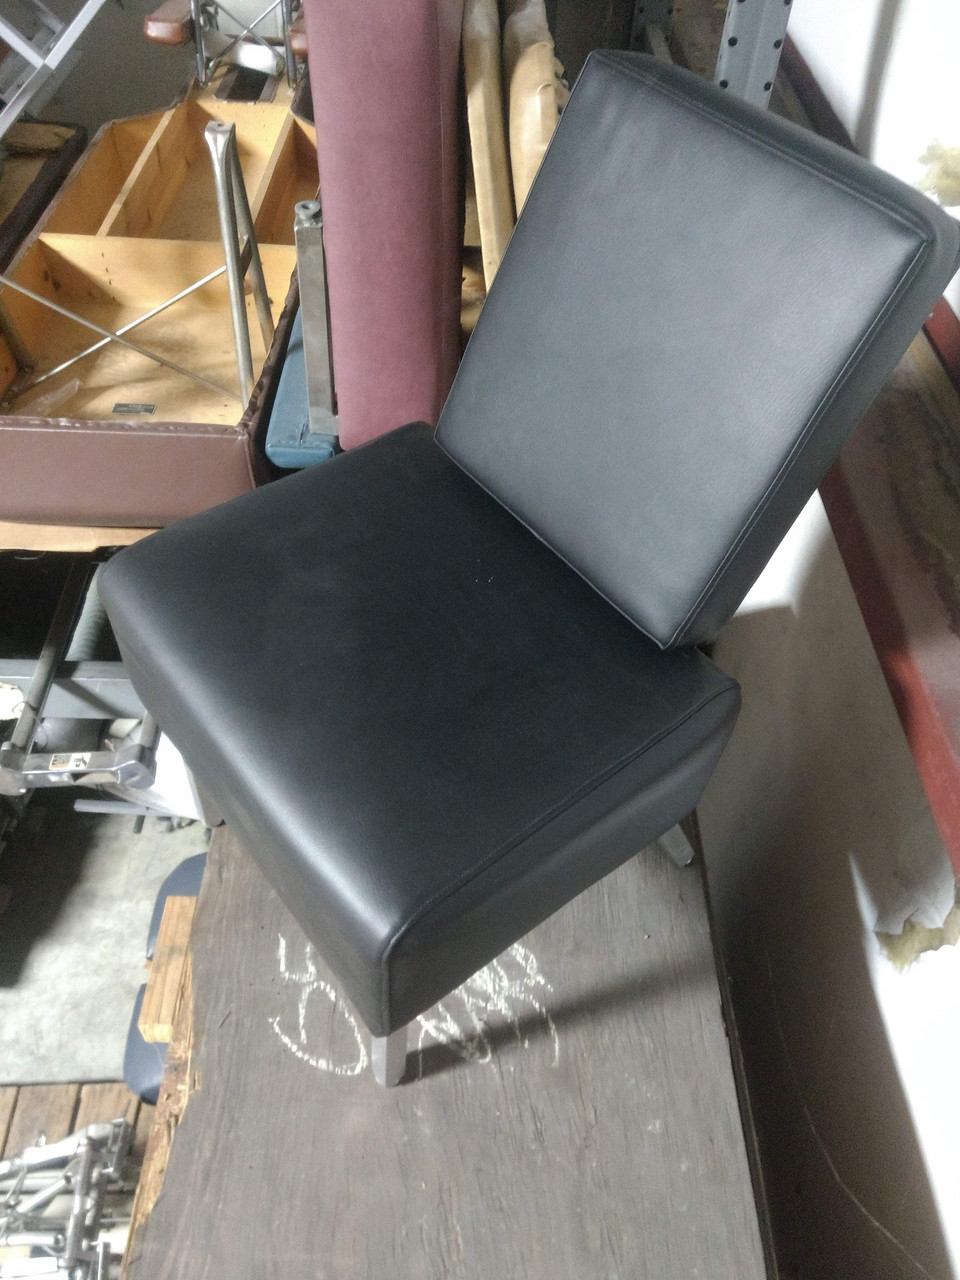 Looking for a deal on a Refurbished Gonstead Cervical Chair,Refurbished Gonstead  Cervical Chair for sale, used Gonstead  Cervical Chair,Gonstead  Cervical Chair